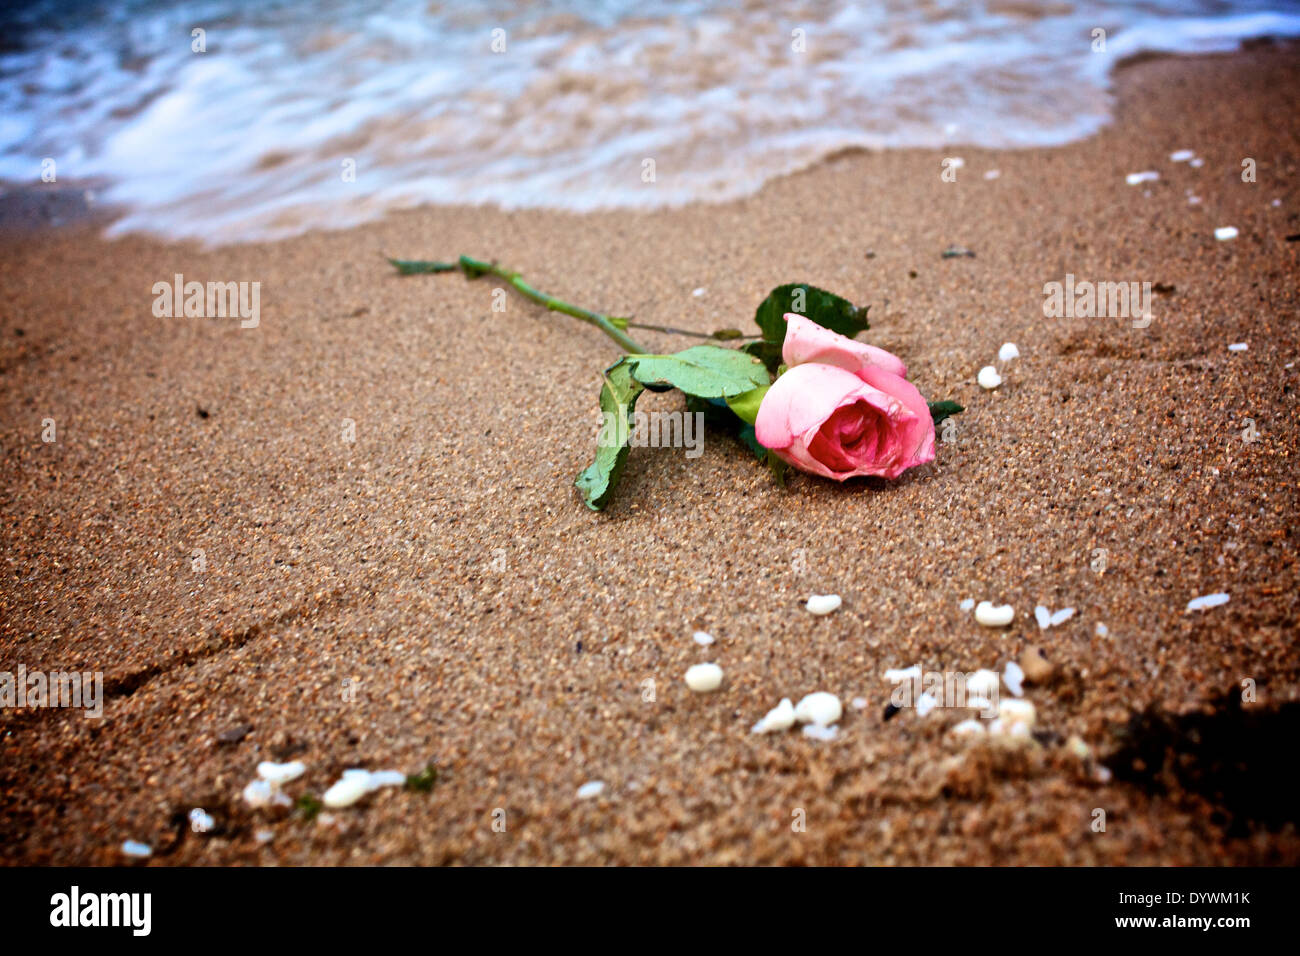 A rose like a gift to folk party of Yemanja. Salvador, Bahia, Brazil - Stock Image